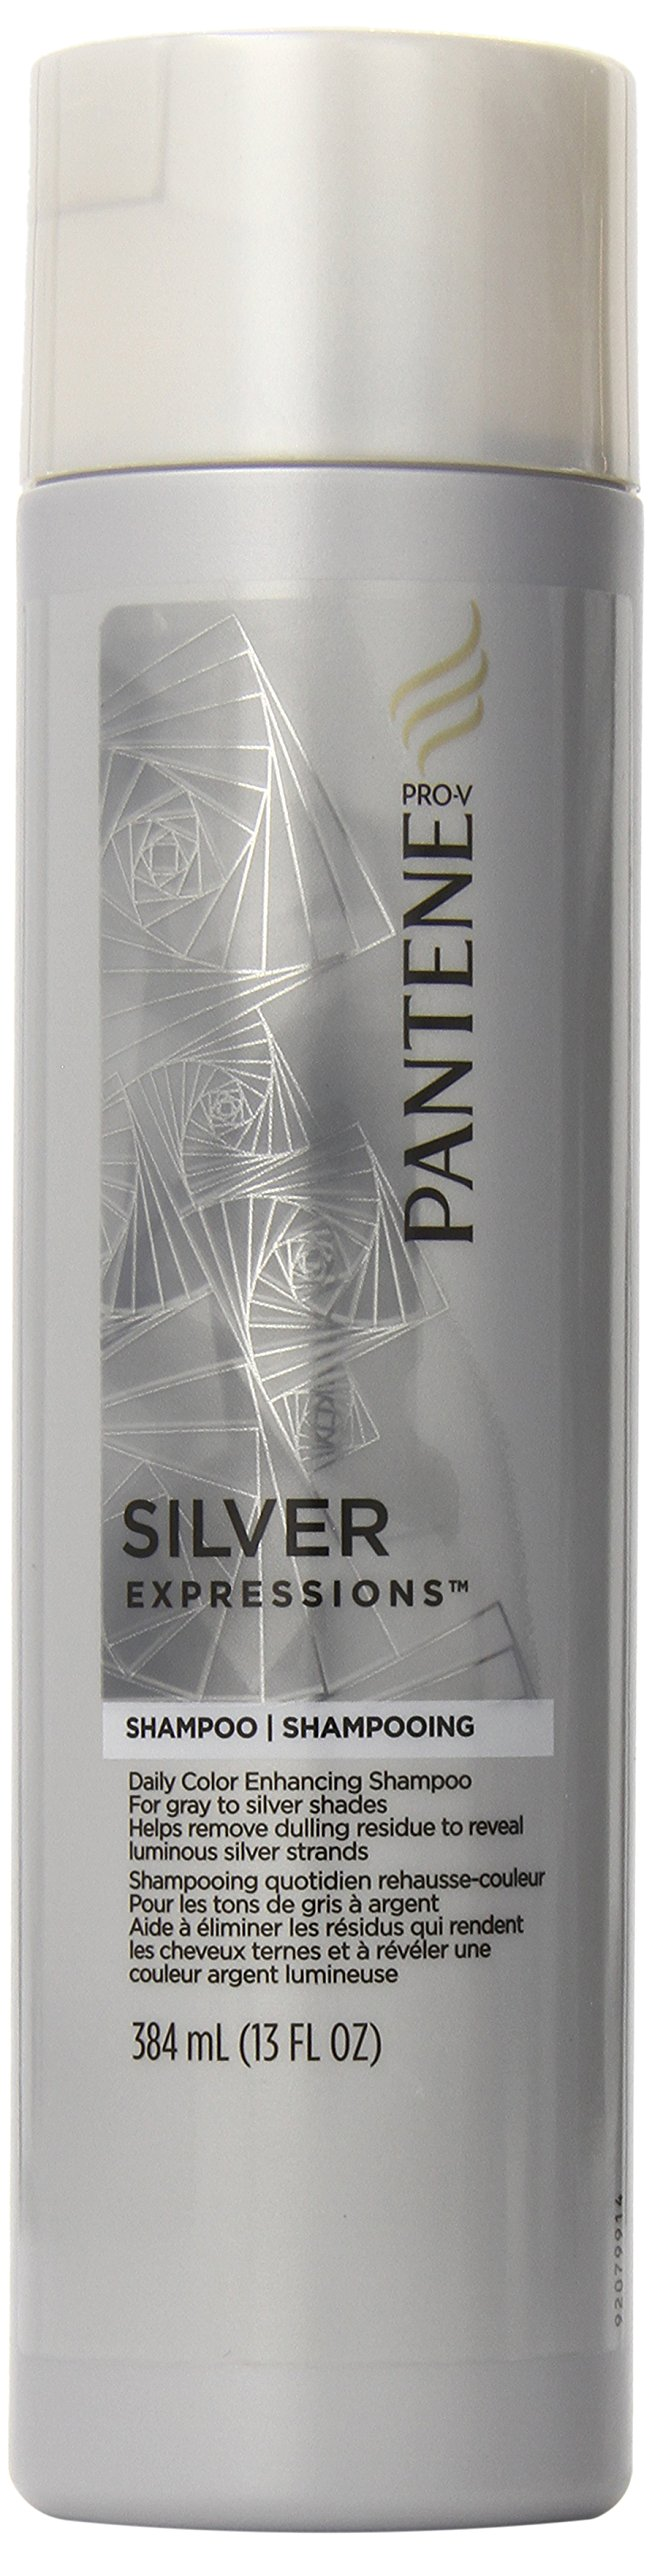 Pantene Silver Expressions Daily Color Enhancing Shampoo 13 Fl Oz (Pack of 2)